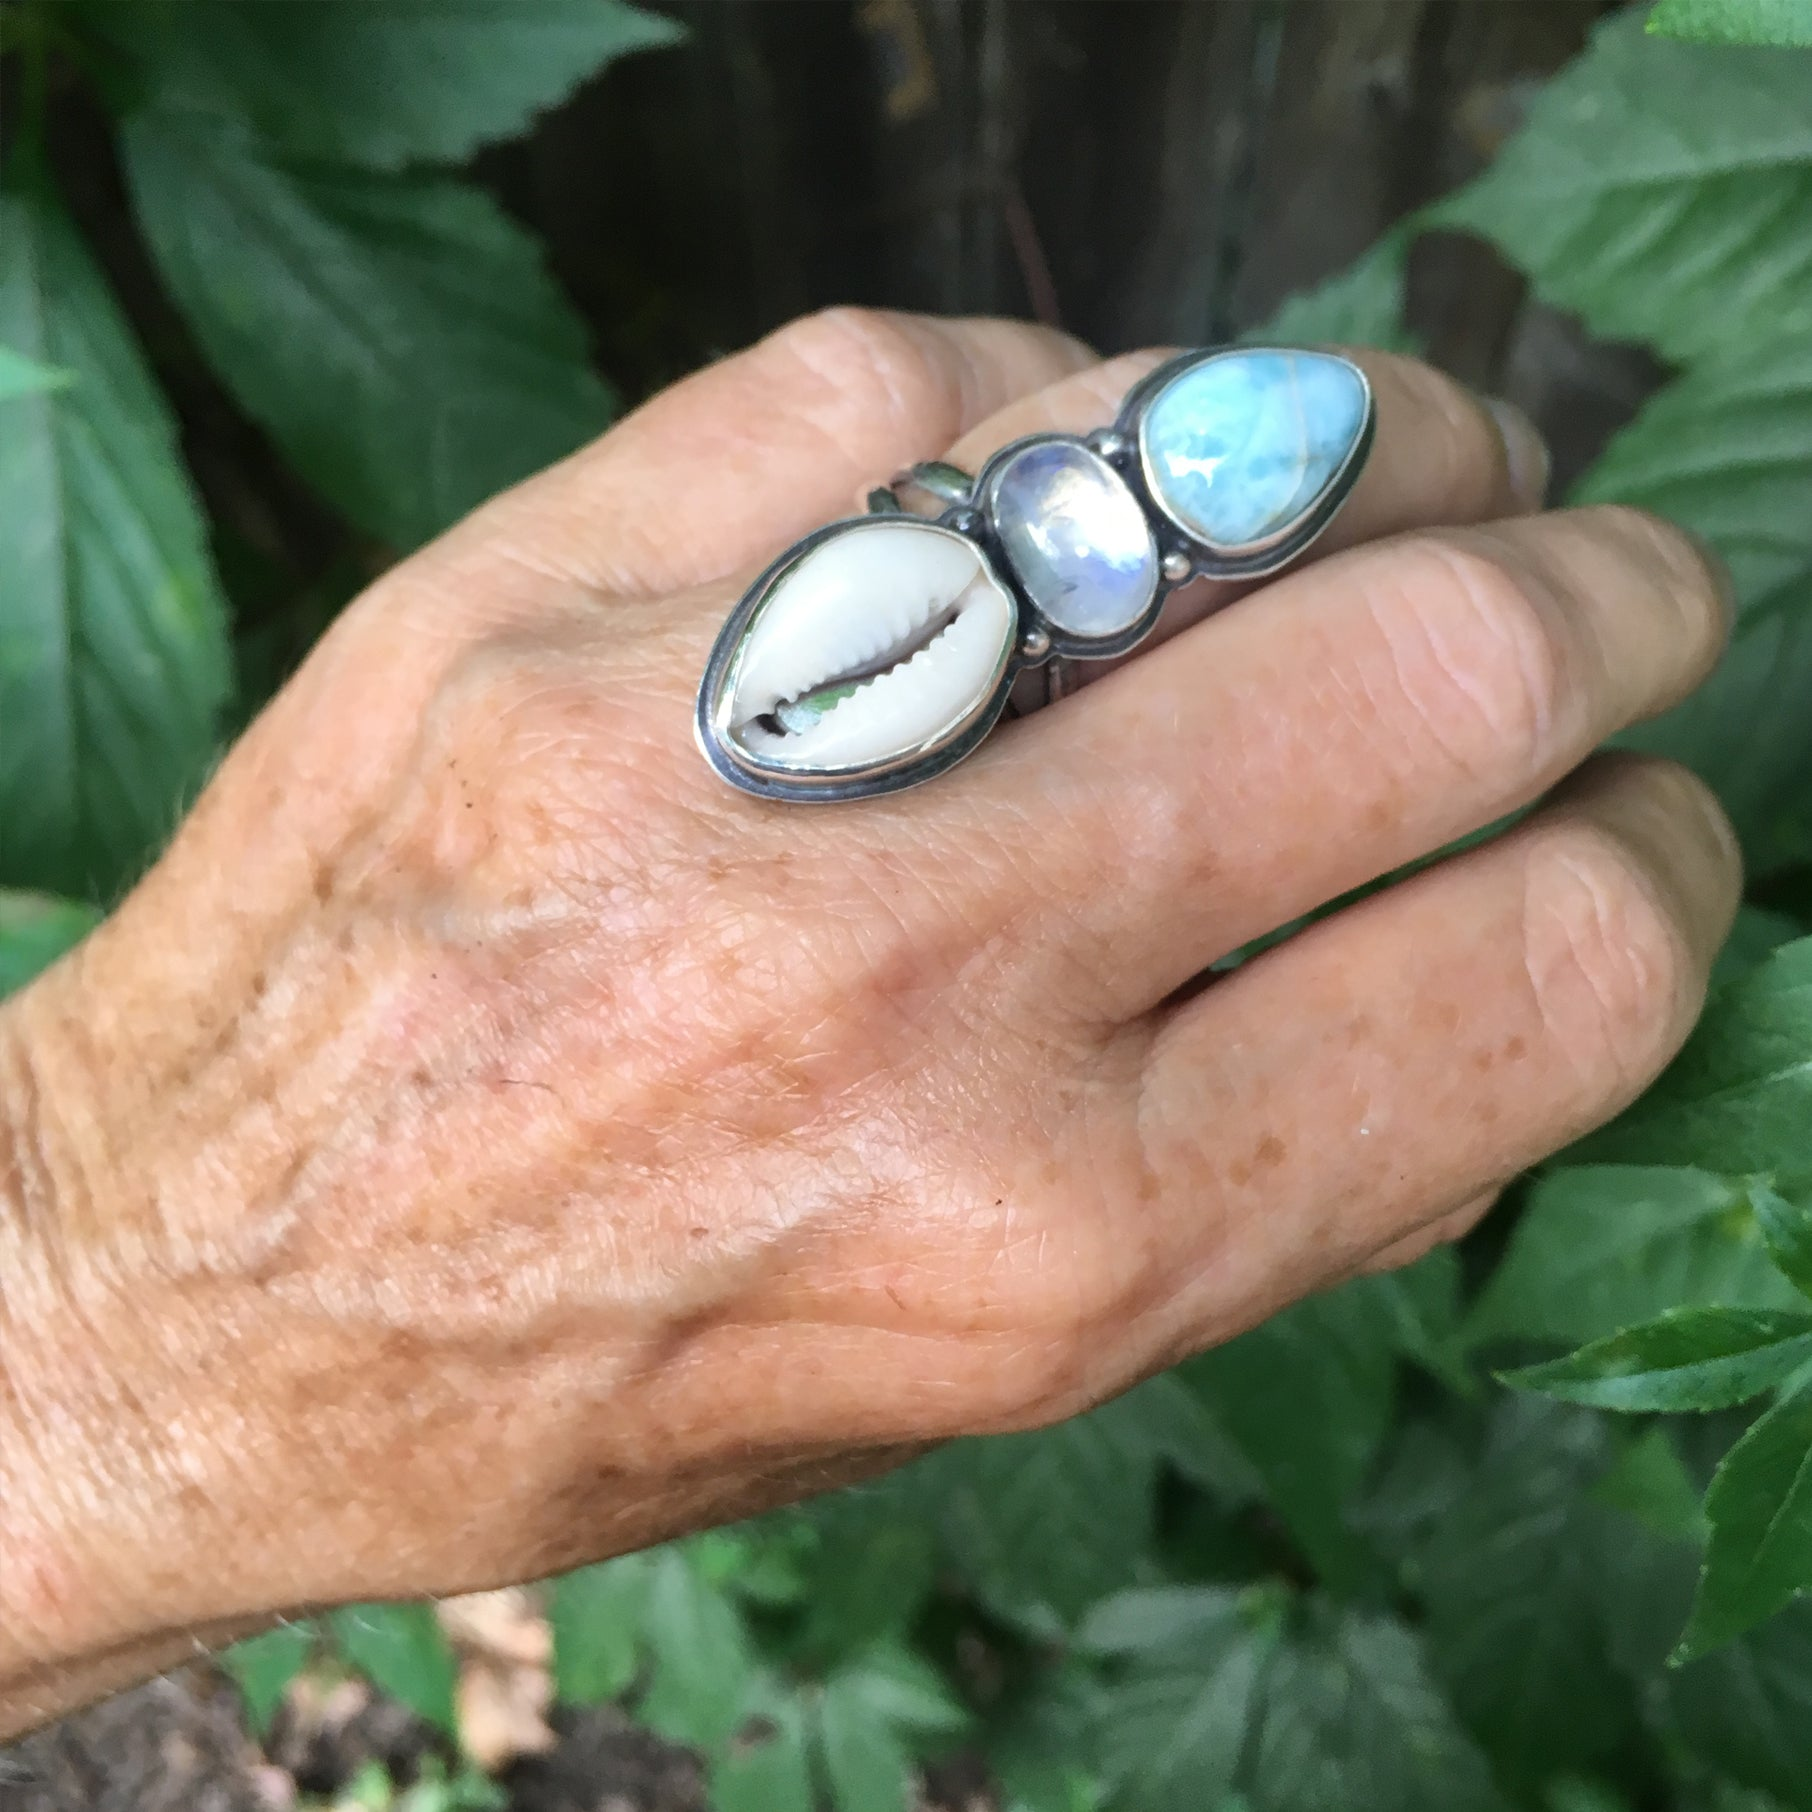 Traveler Trio Ring with Larimar, Rainbow Moonstone and Cowrie Shell Shown on Hand